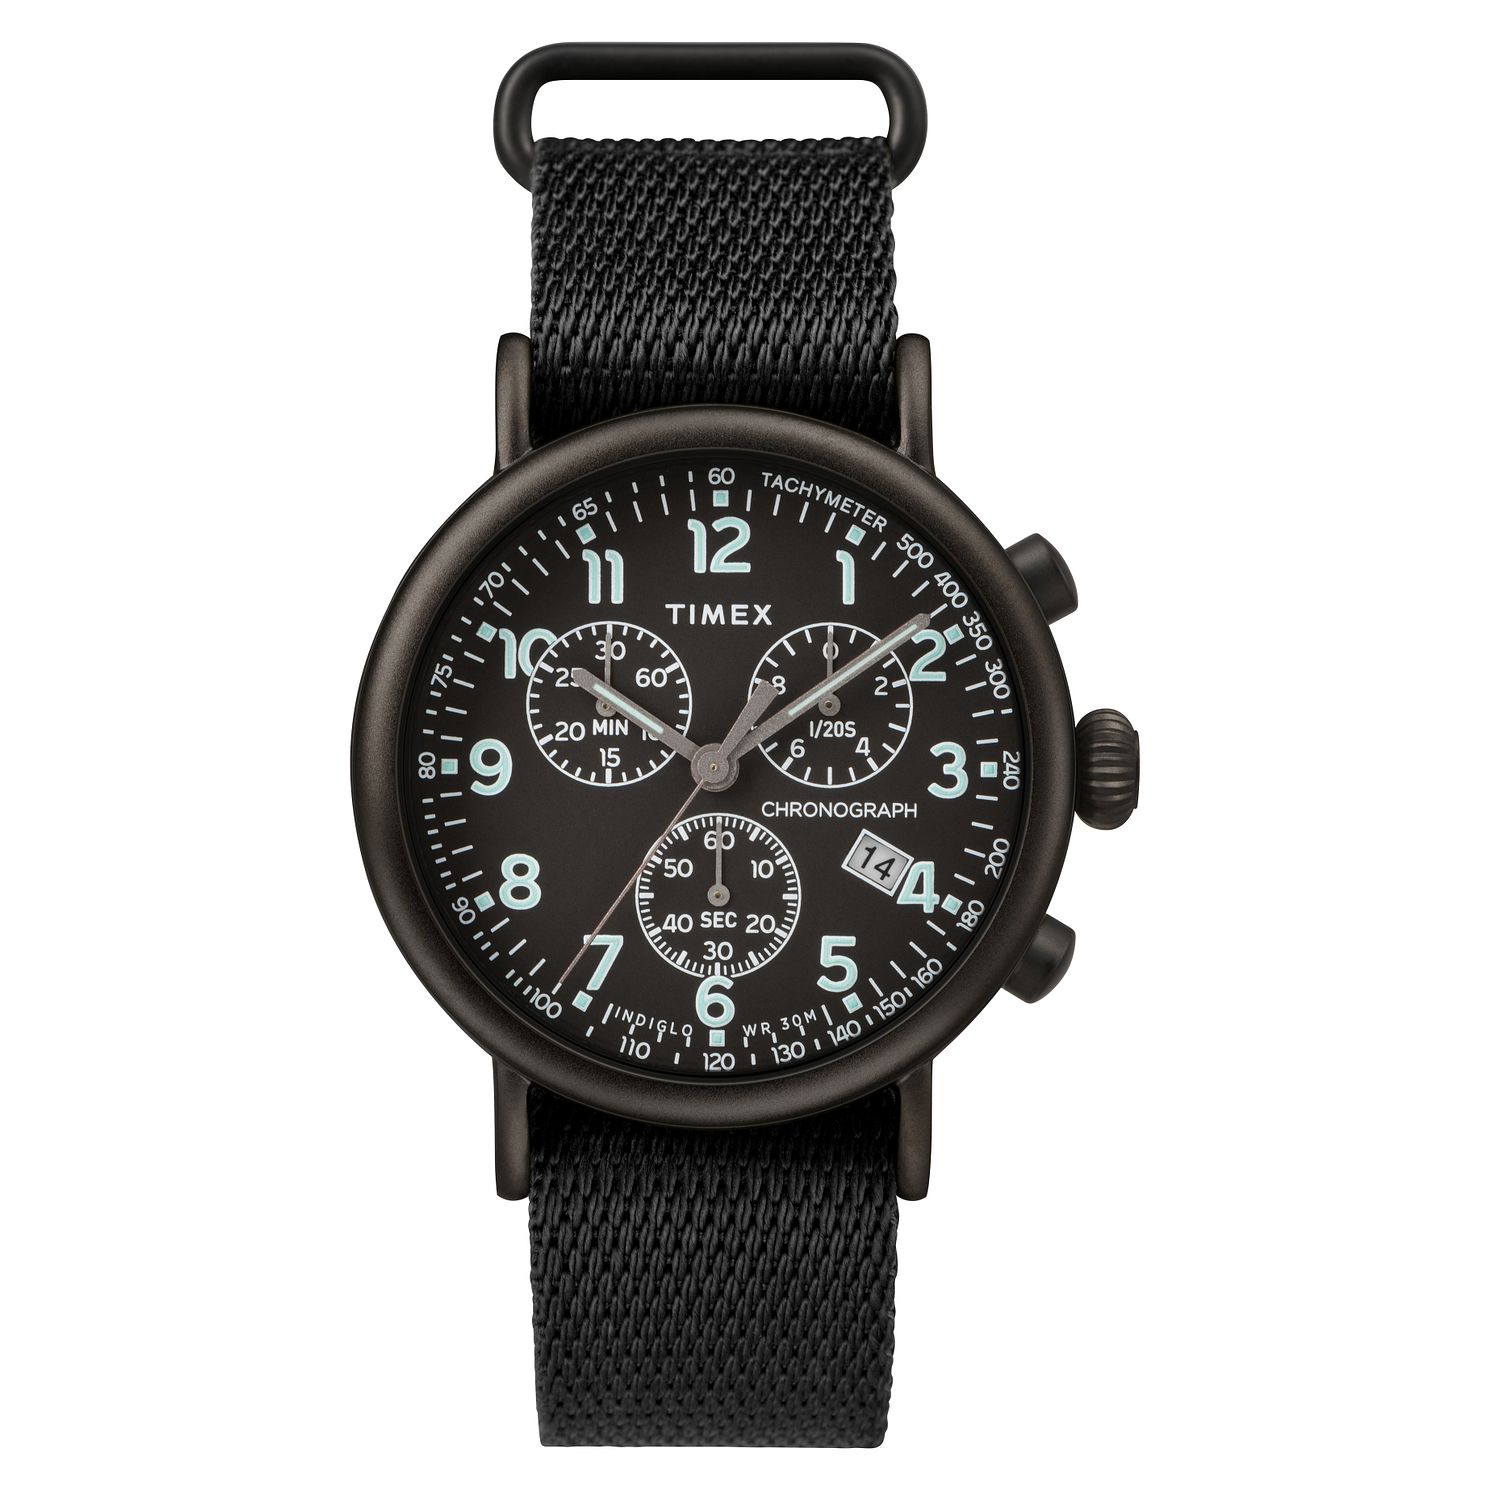 Timex Standard Chronograph Men's Black Fabric Strap Watch - Product number 2374889